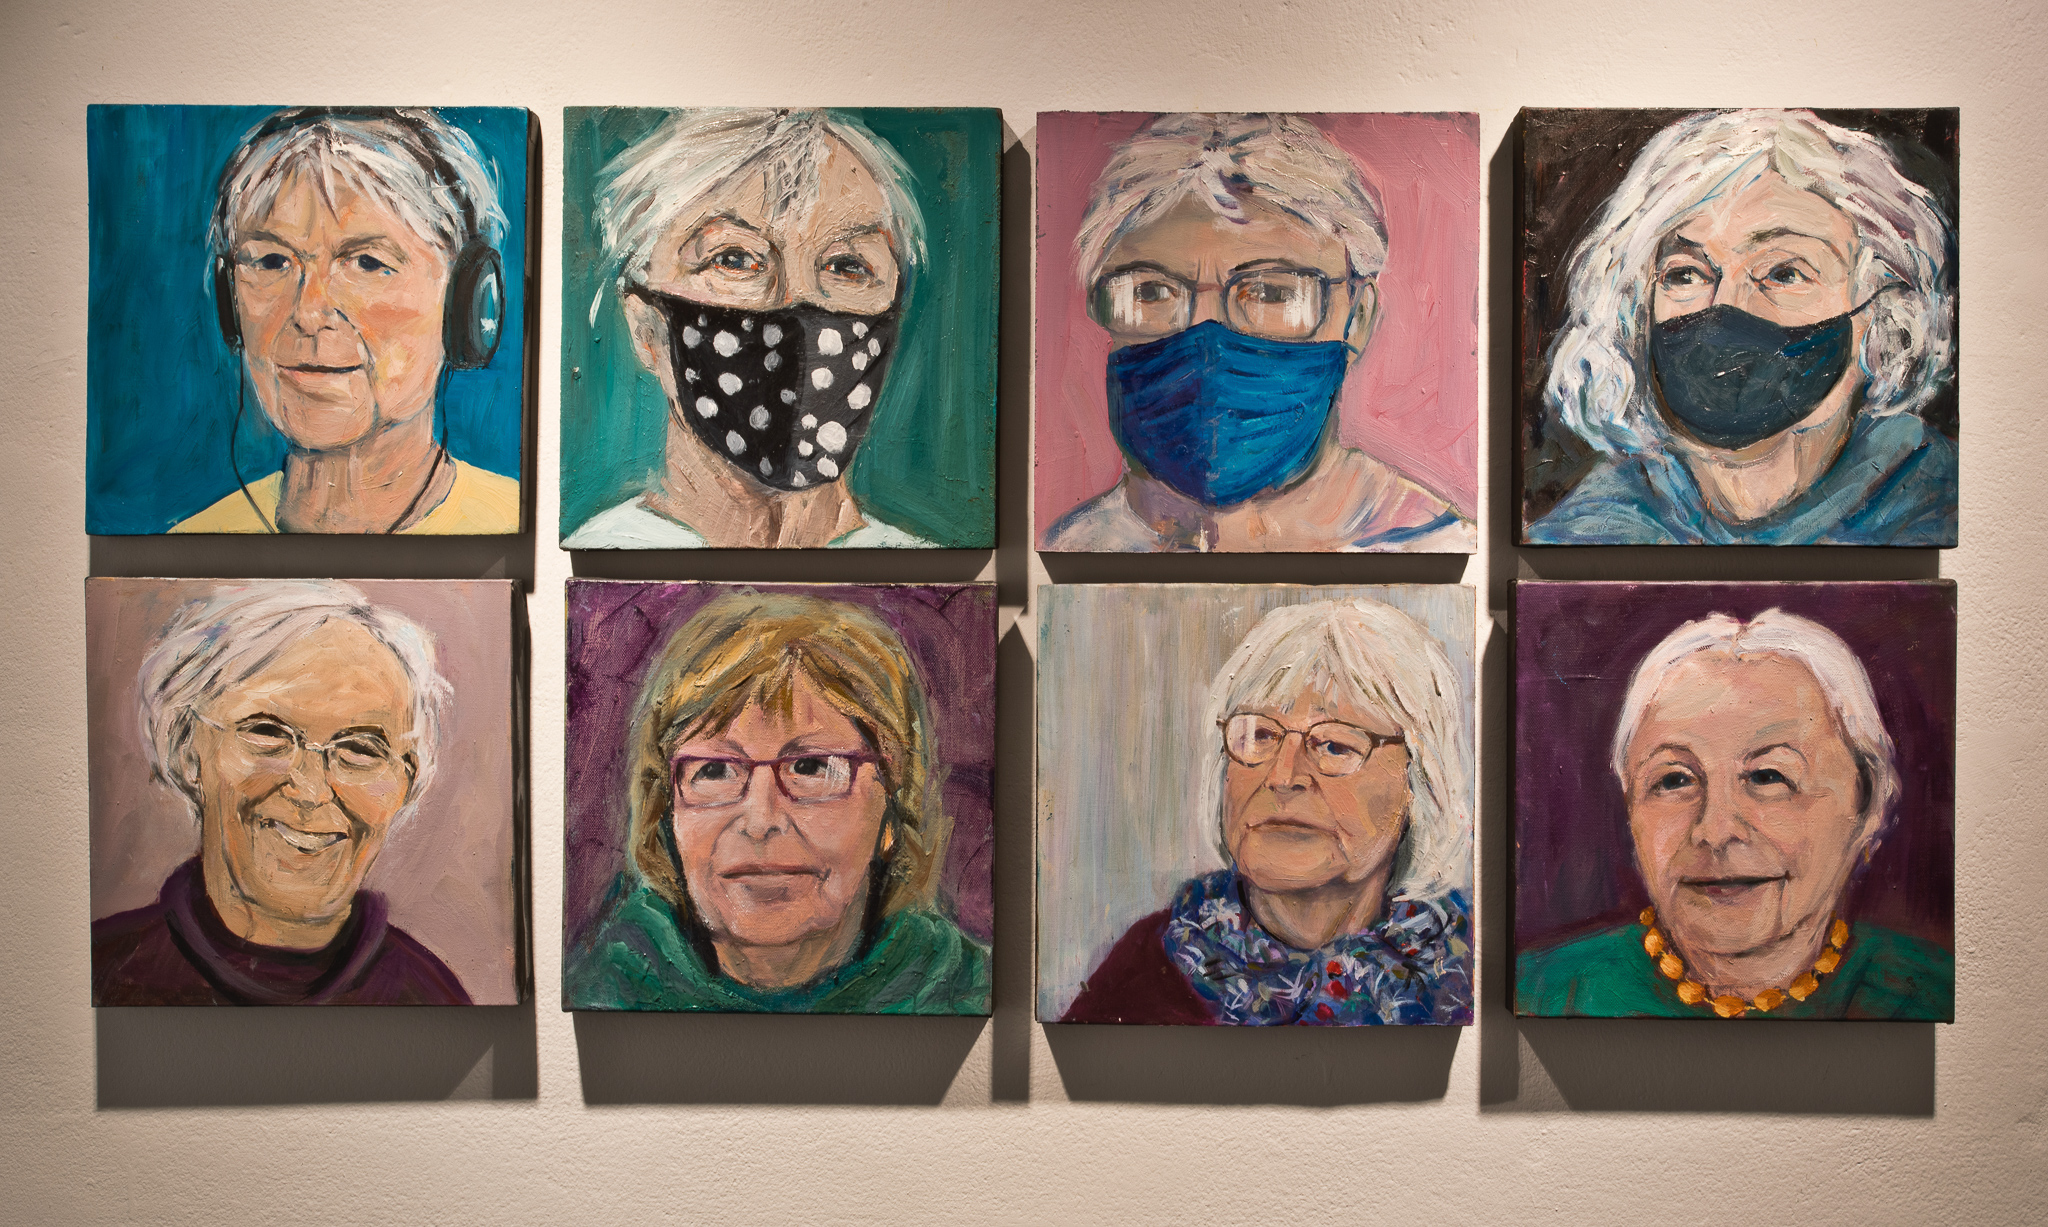 Patricia Hurl, The Gallery of the Missing Artists, 2020 -2021, 8 panels, oil on board, 30x30cm - NFS